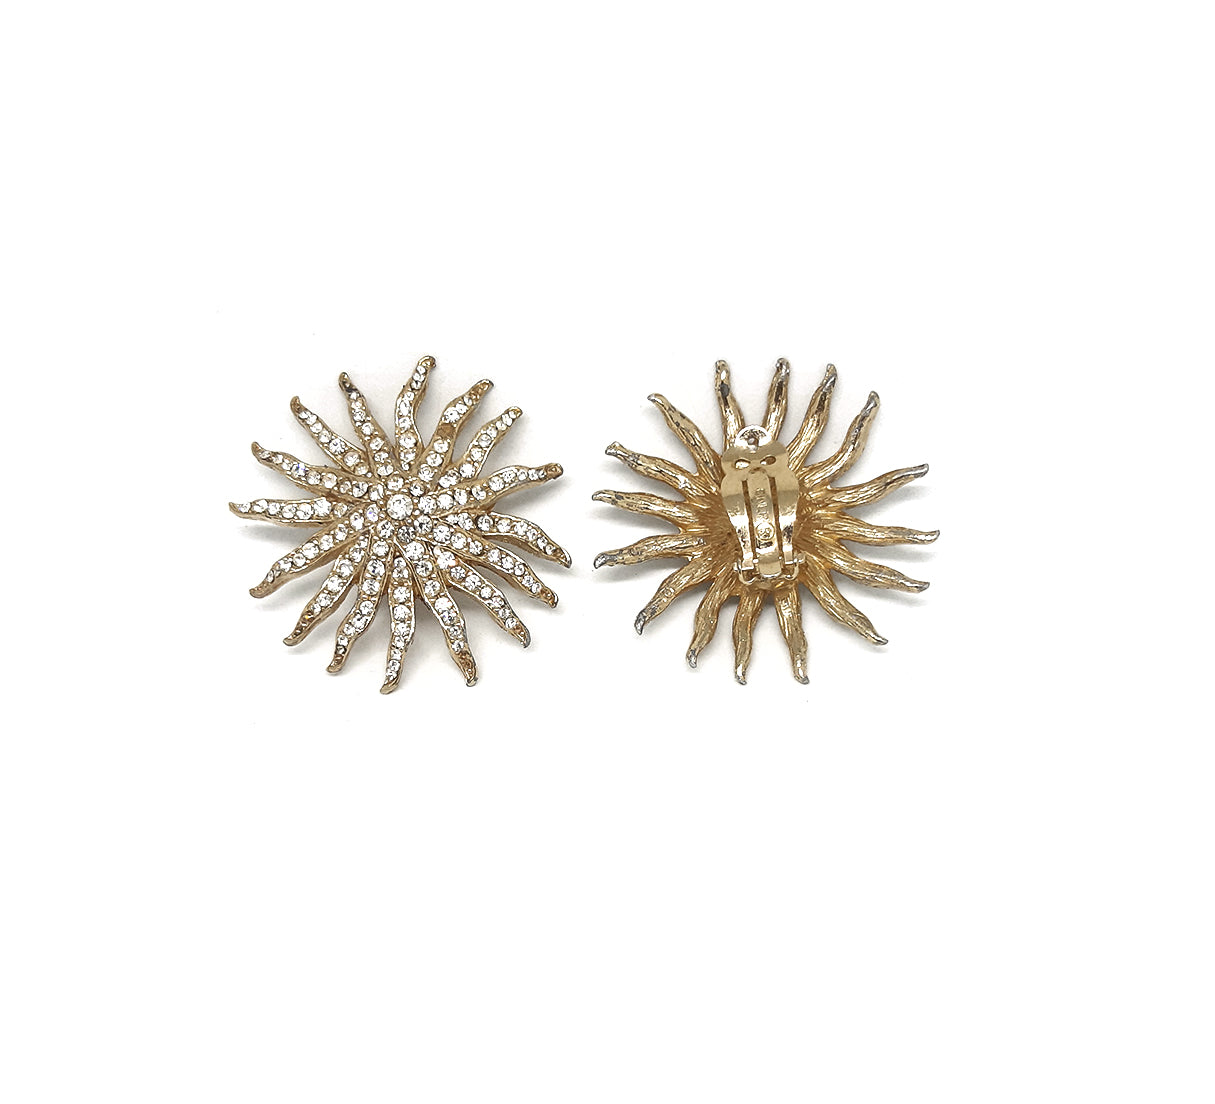 Vintage Ciner Clip Earrings with Clear-Rhinestone Encrusted Design.